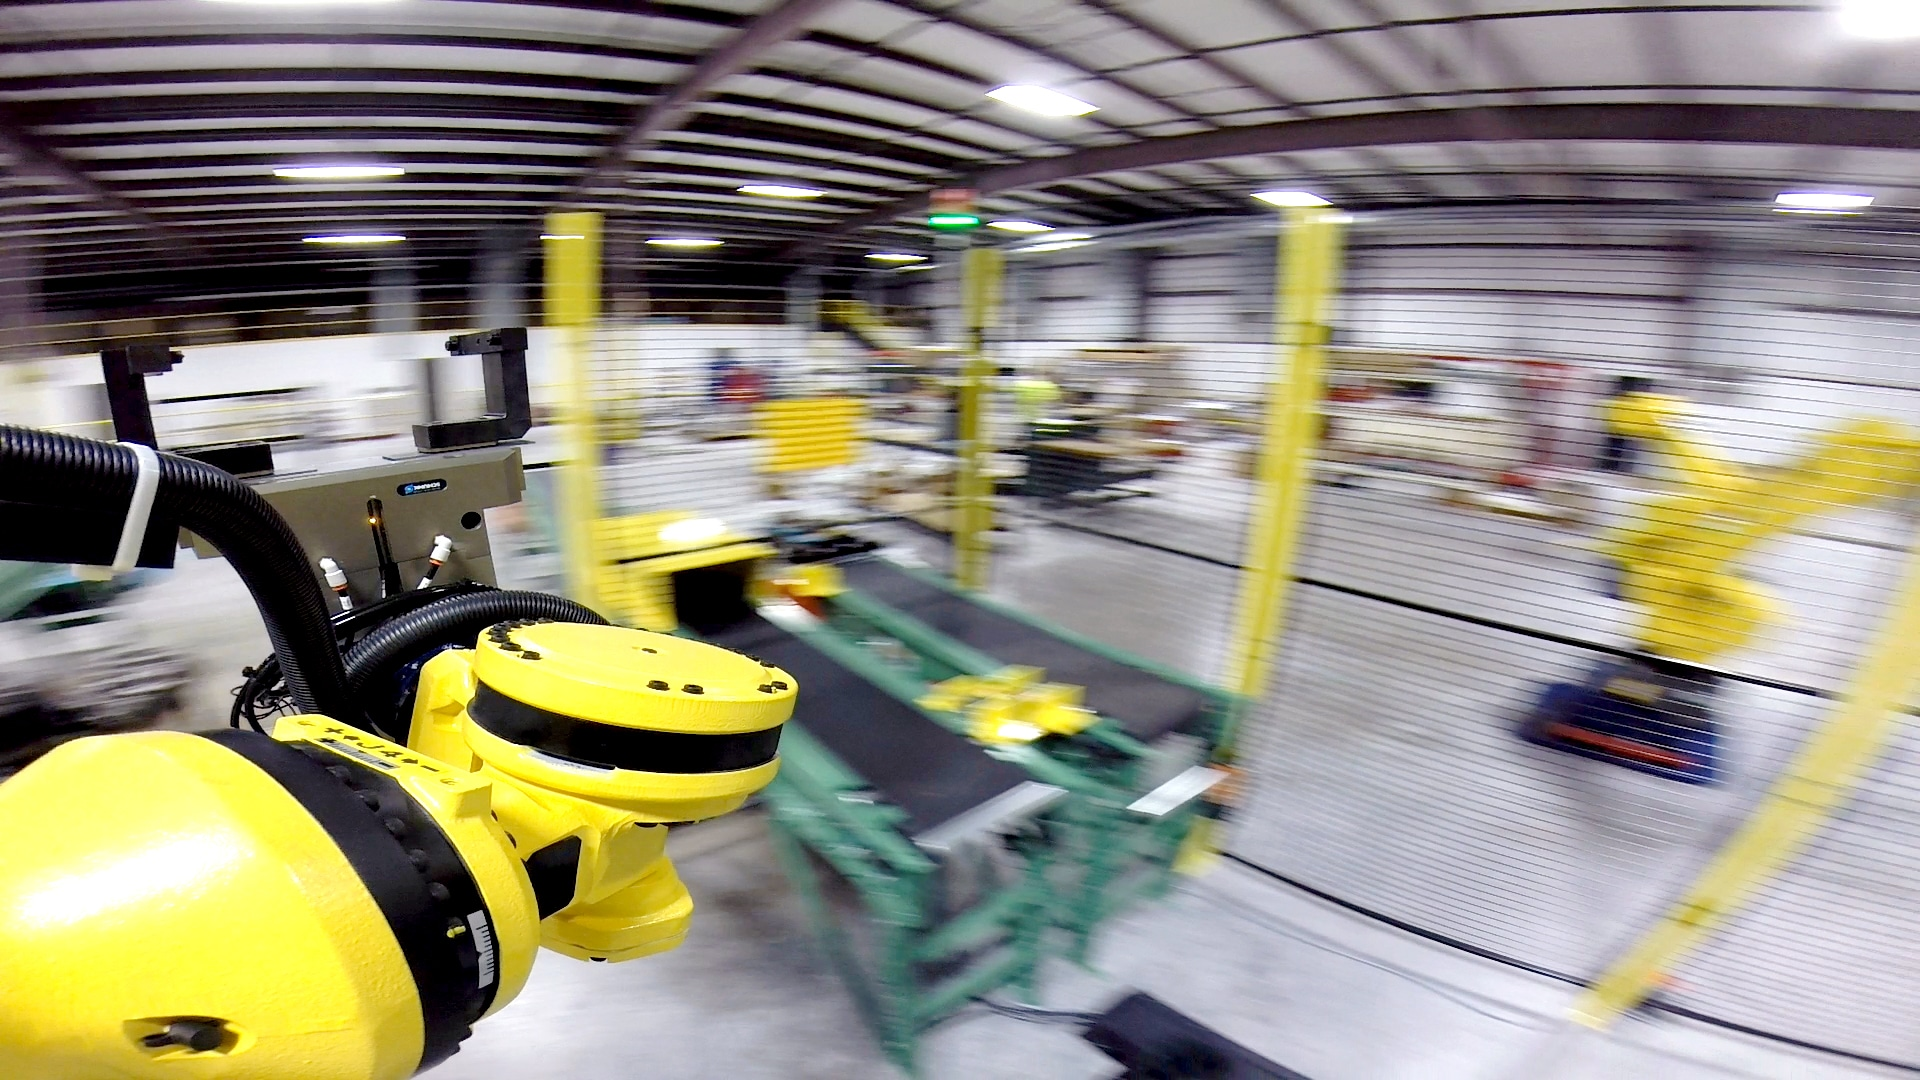 Picking and Placing Parts into Automated Cell